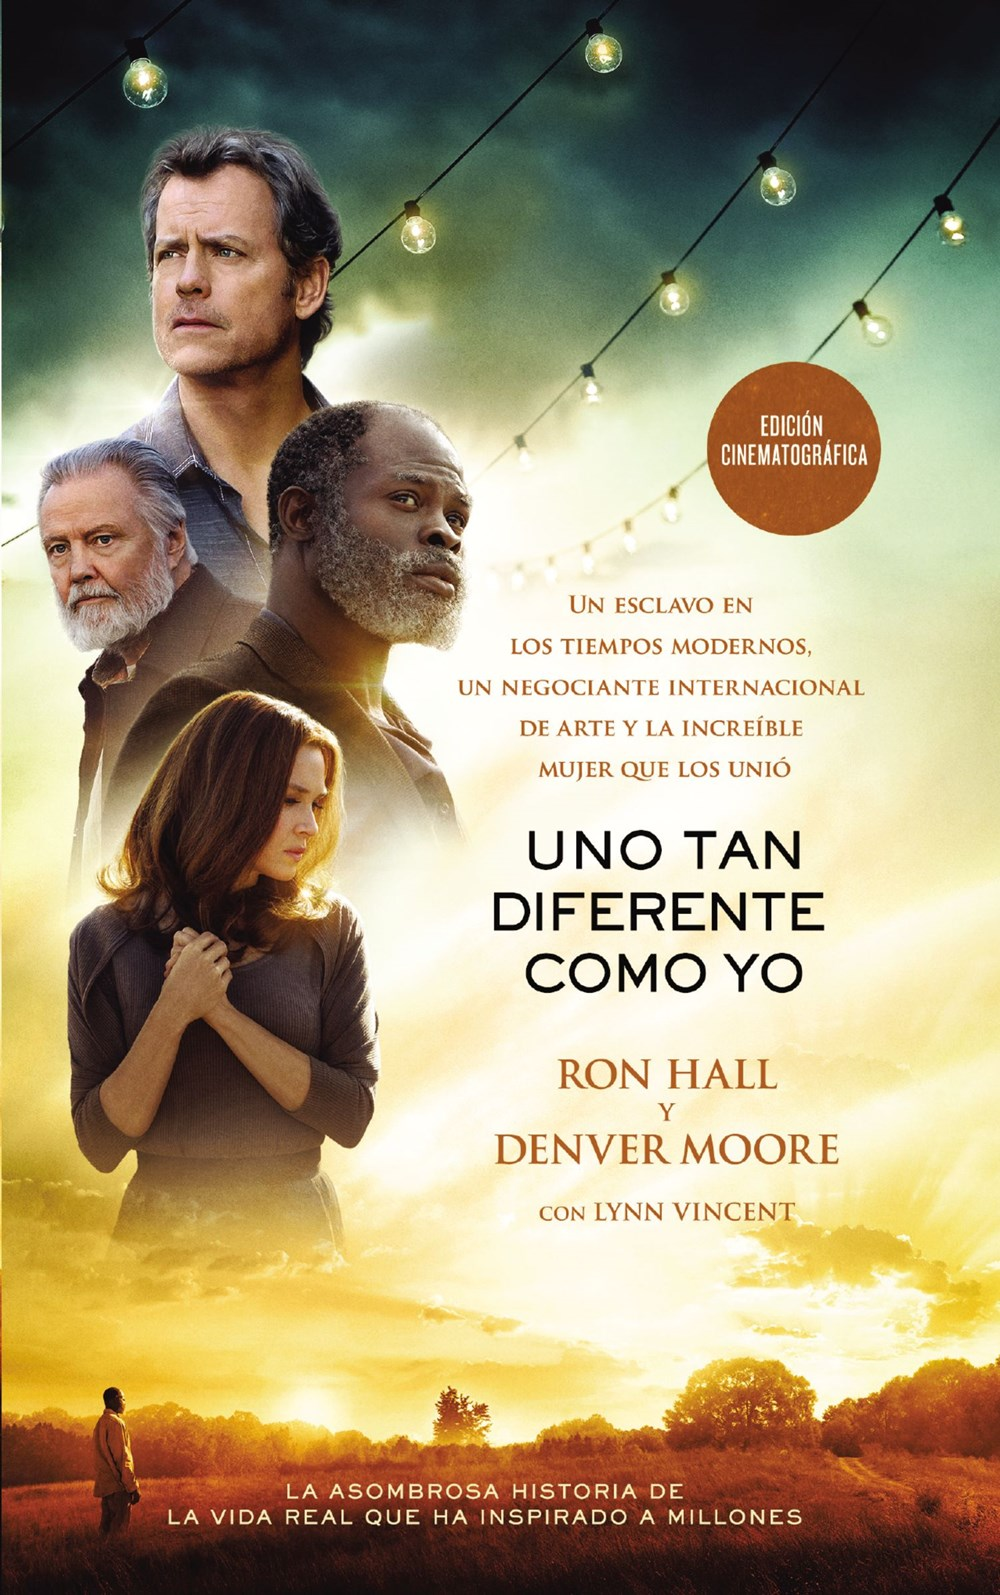 Uno tan diferente como yo - Hall Ron